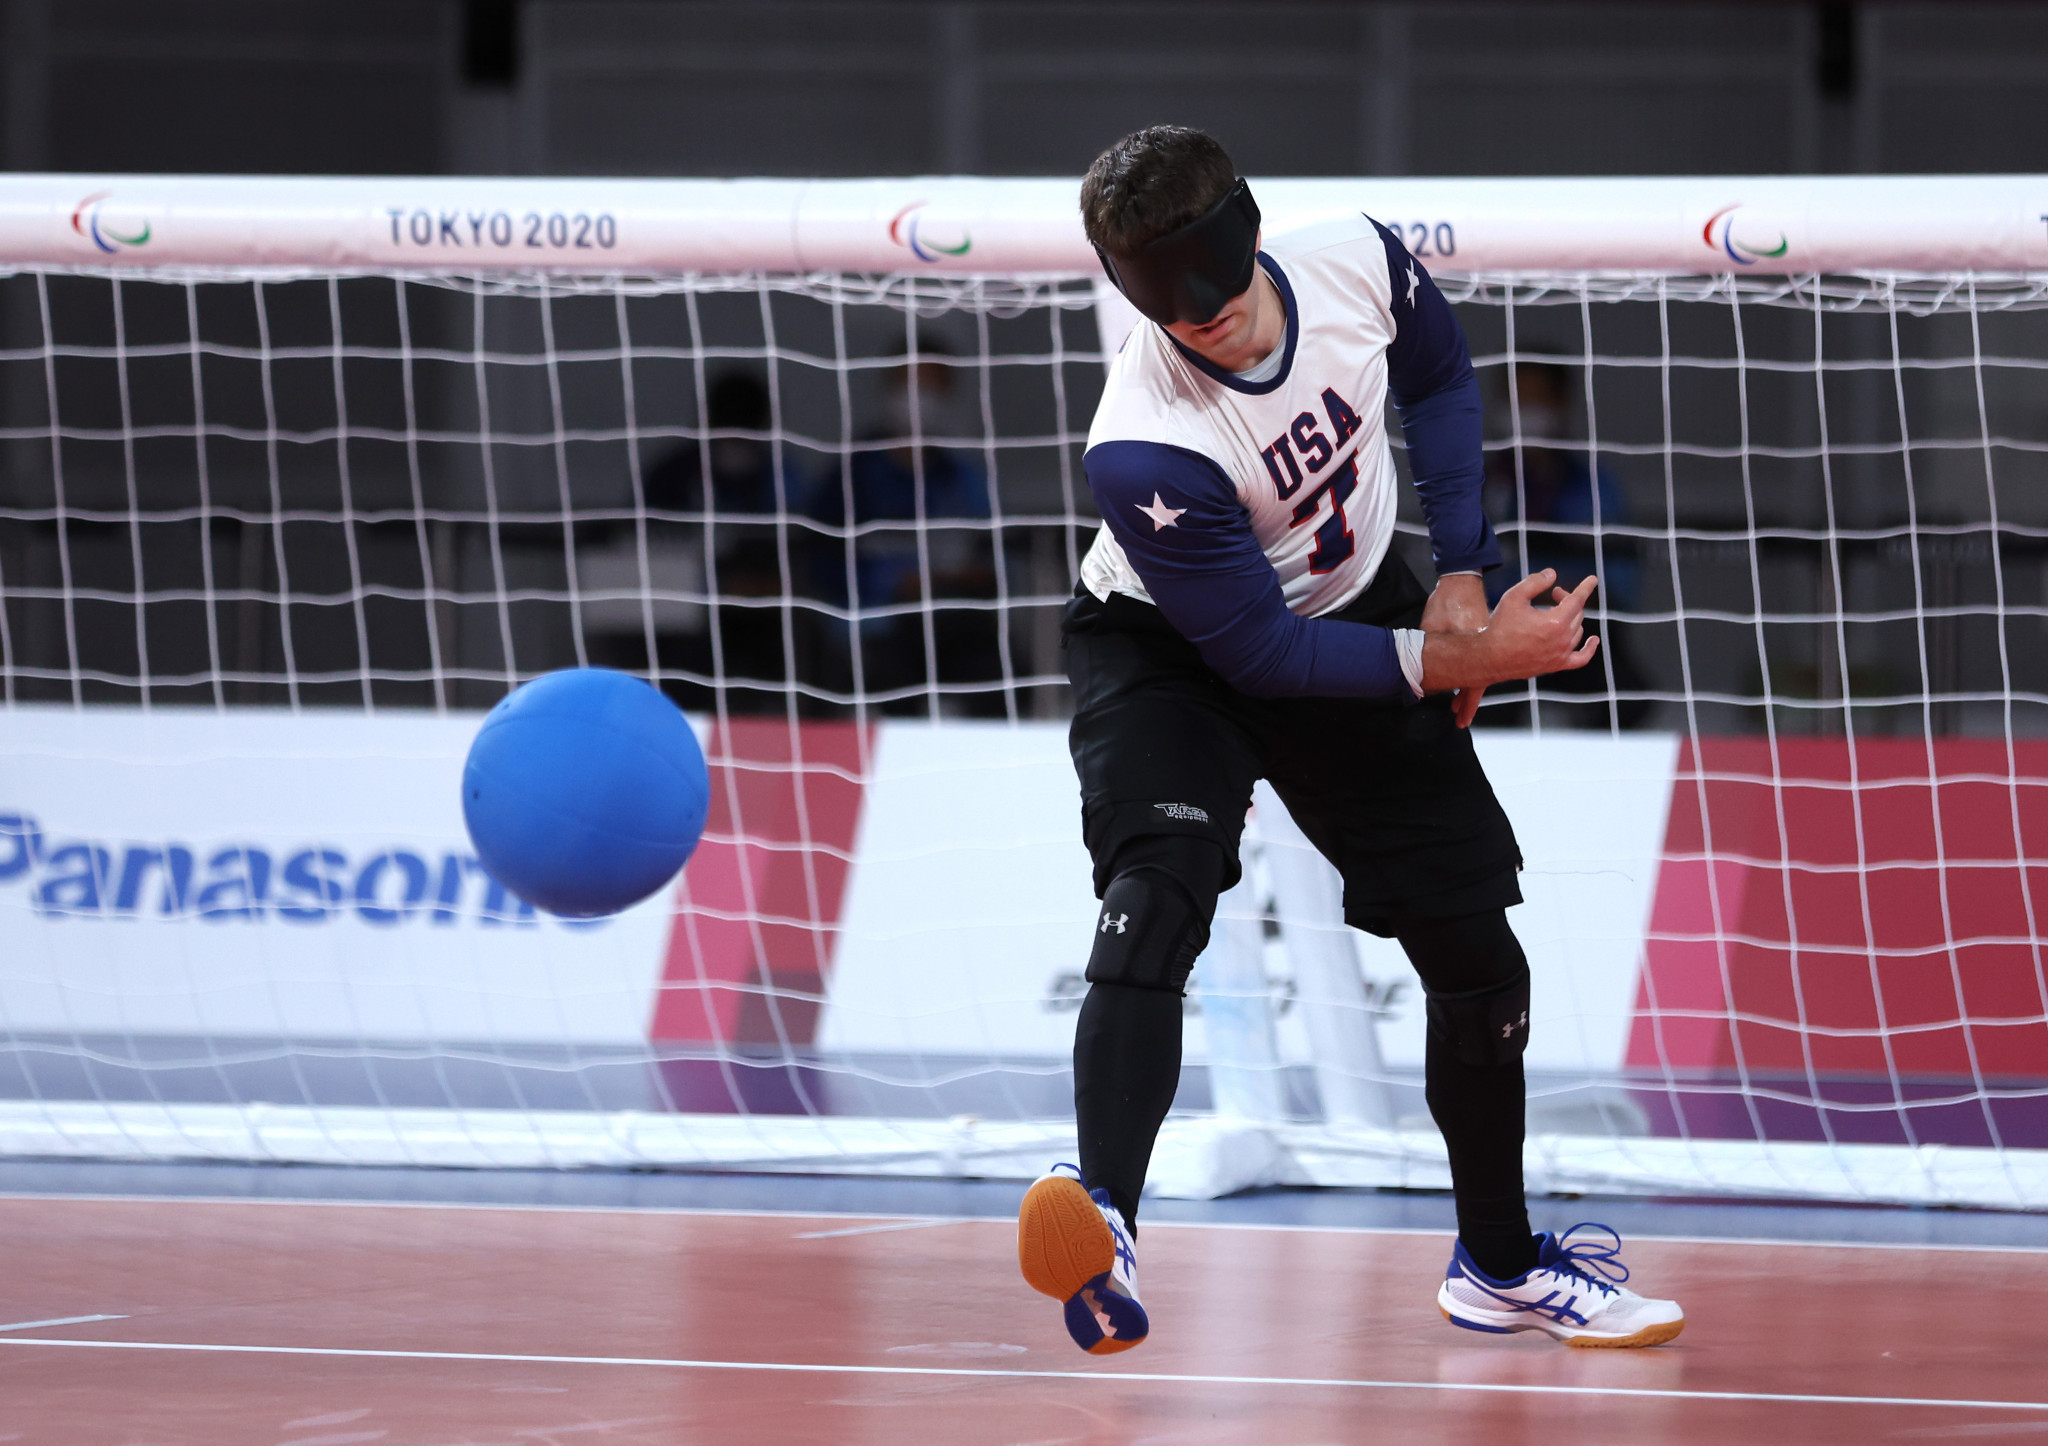 Tokyo 2020 Paralympic Games: Day 10 of competition